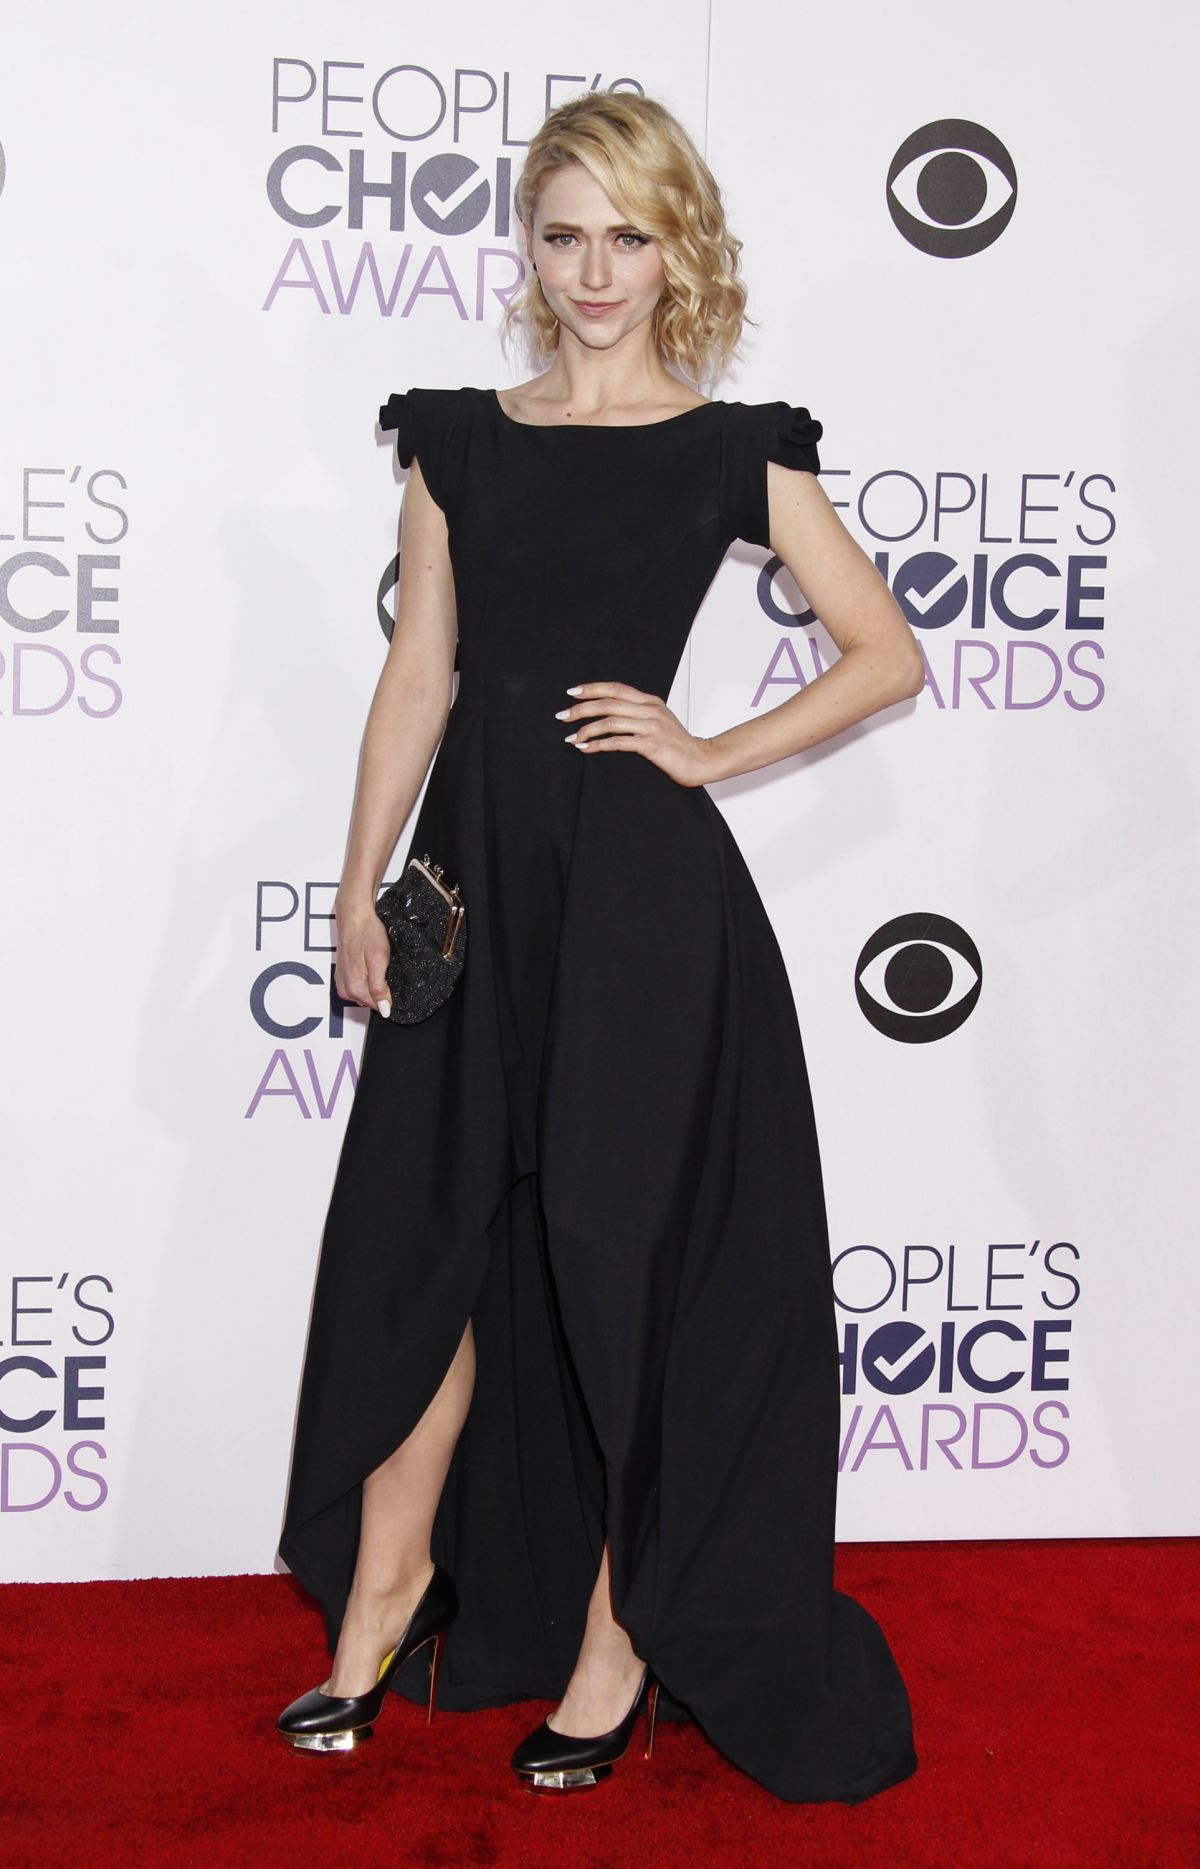 JOHANNA BRADDY at 2016 People's Choice Awards in Los Angeles 01/06/2016